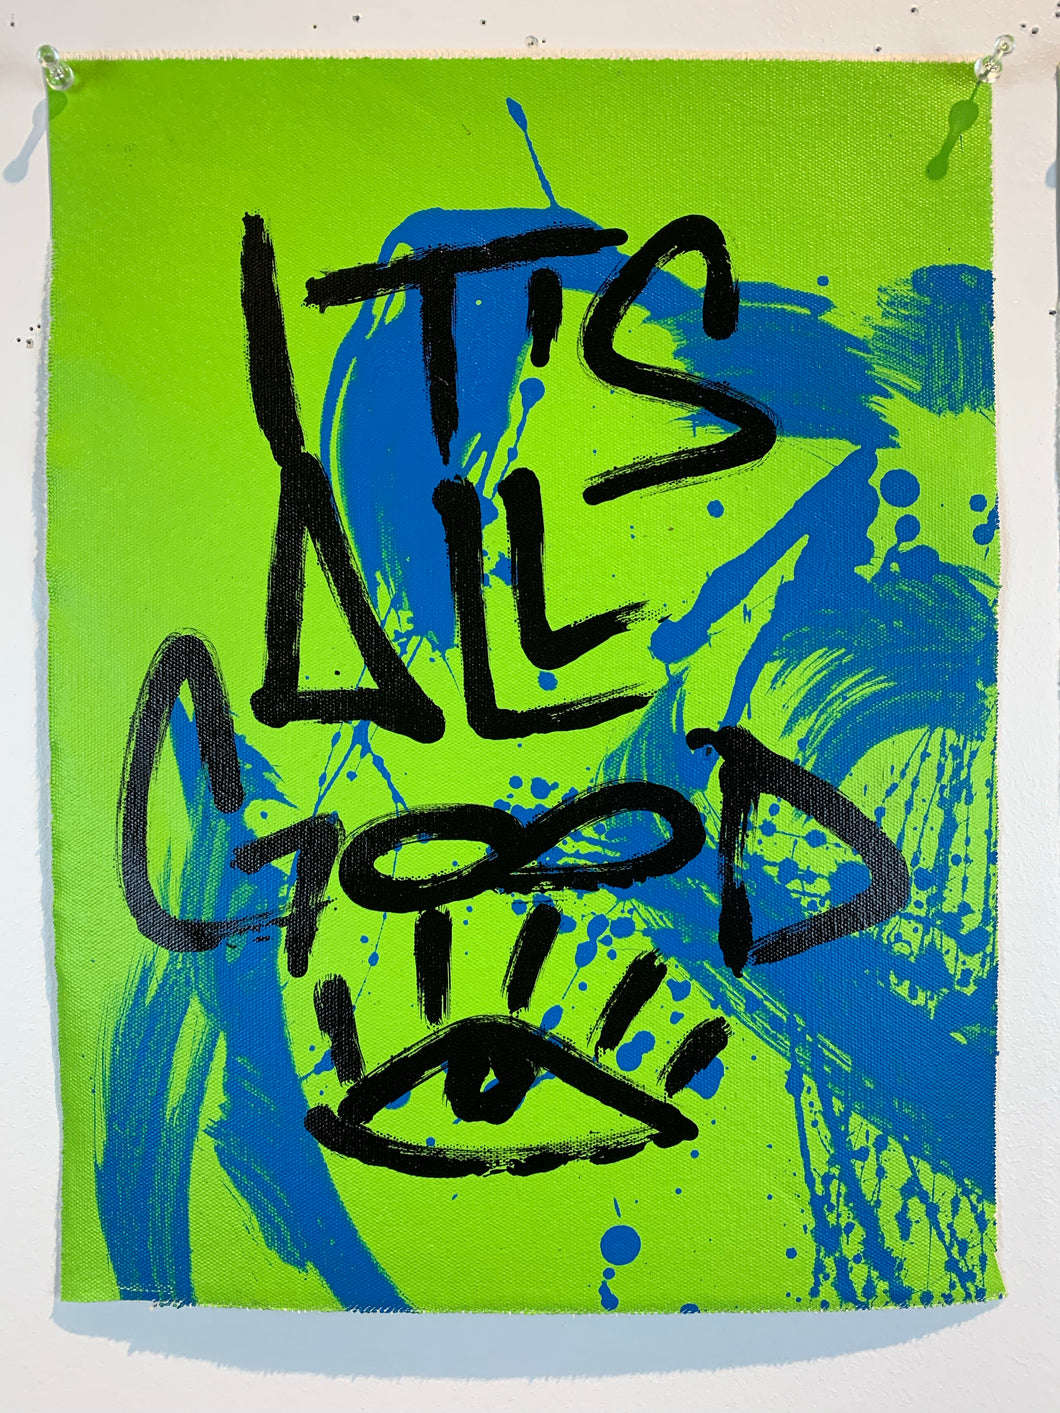 It's All Good/Mystery Lime + Blue/2021